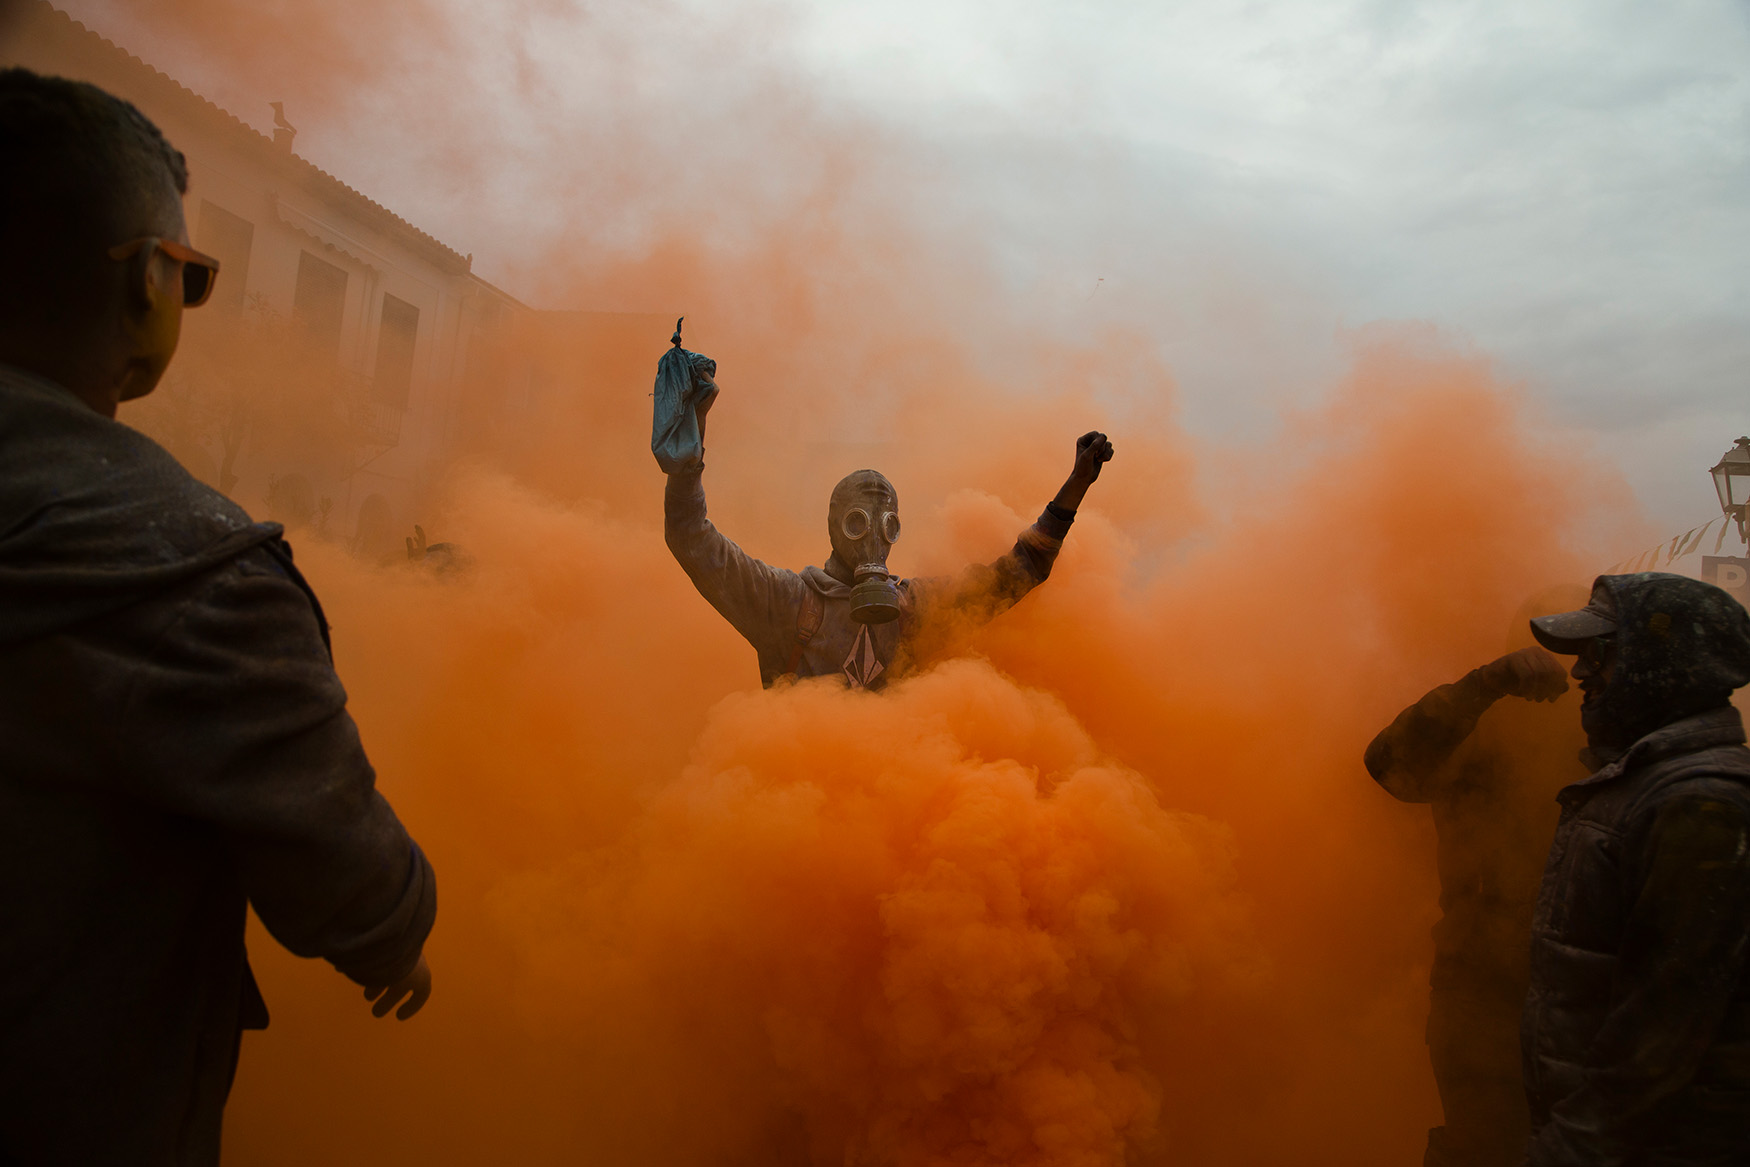 in this Monday, Feb. 19, 2018 photo, revelers take part in the flour war, a unique colorful flour fight marking the end of the carnival season in the port town of Galaxidi, some 200 kilometers (120 miles) west of Athens.  (AP Photo/Petros Giannakouris)